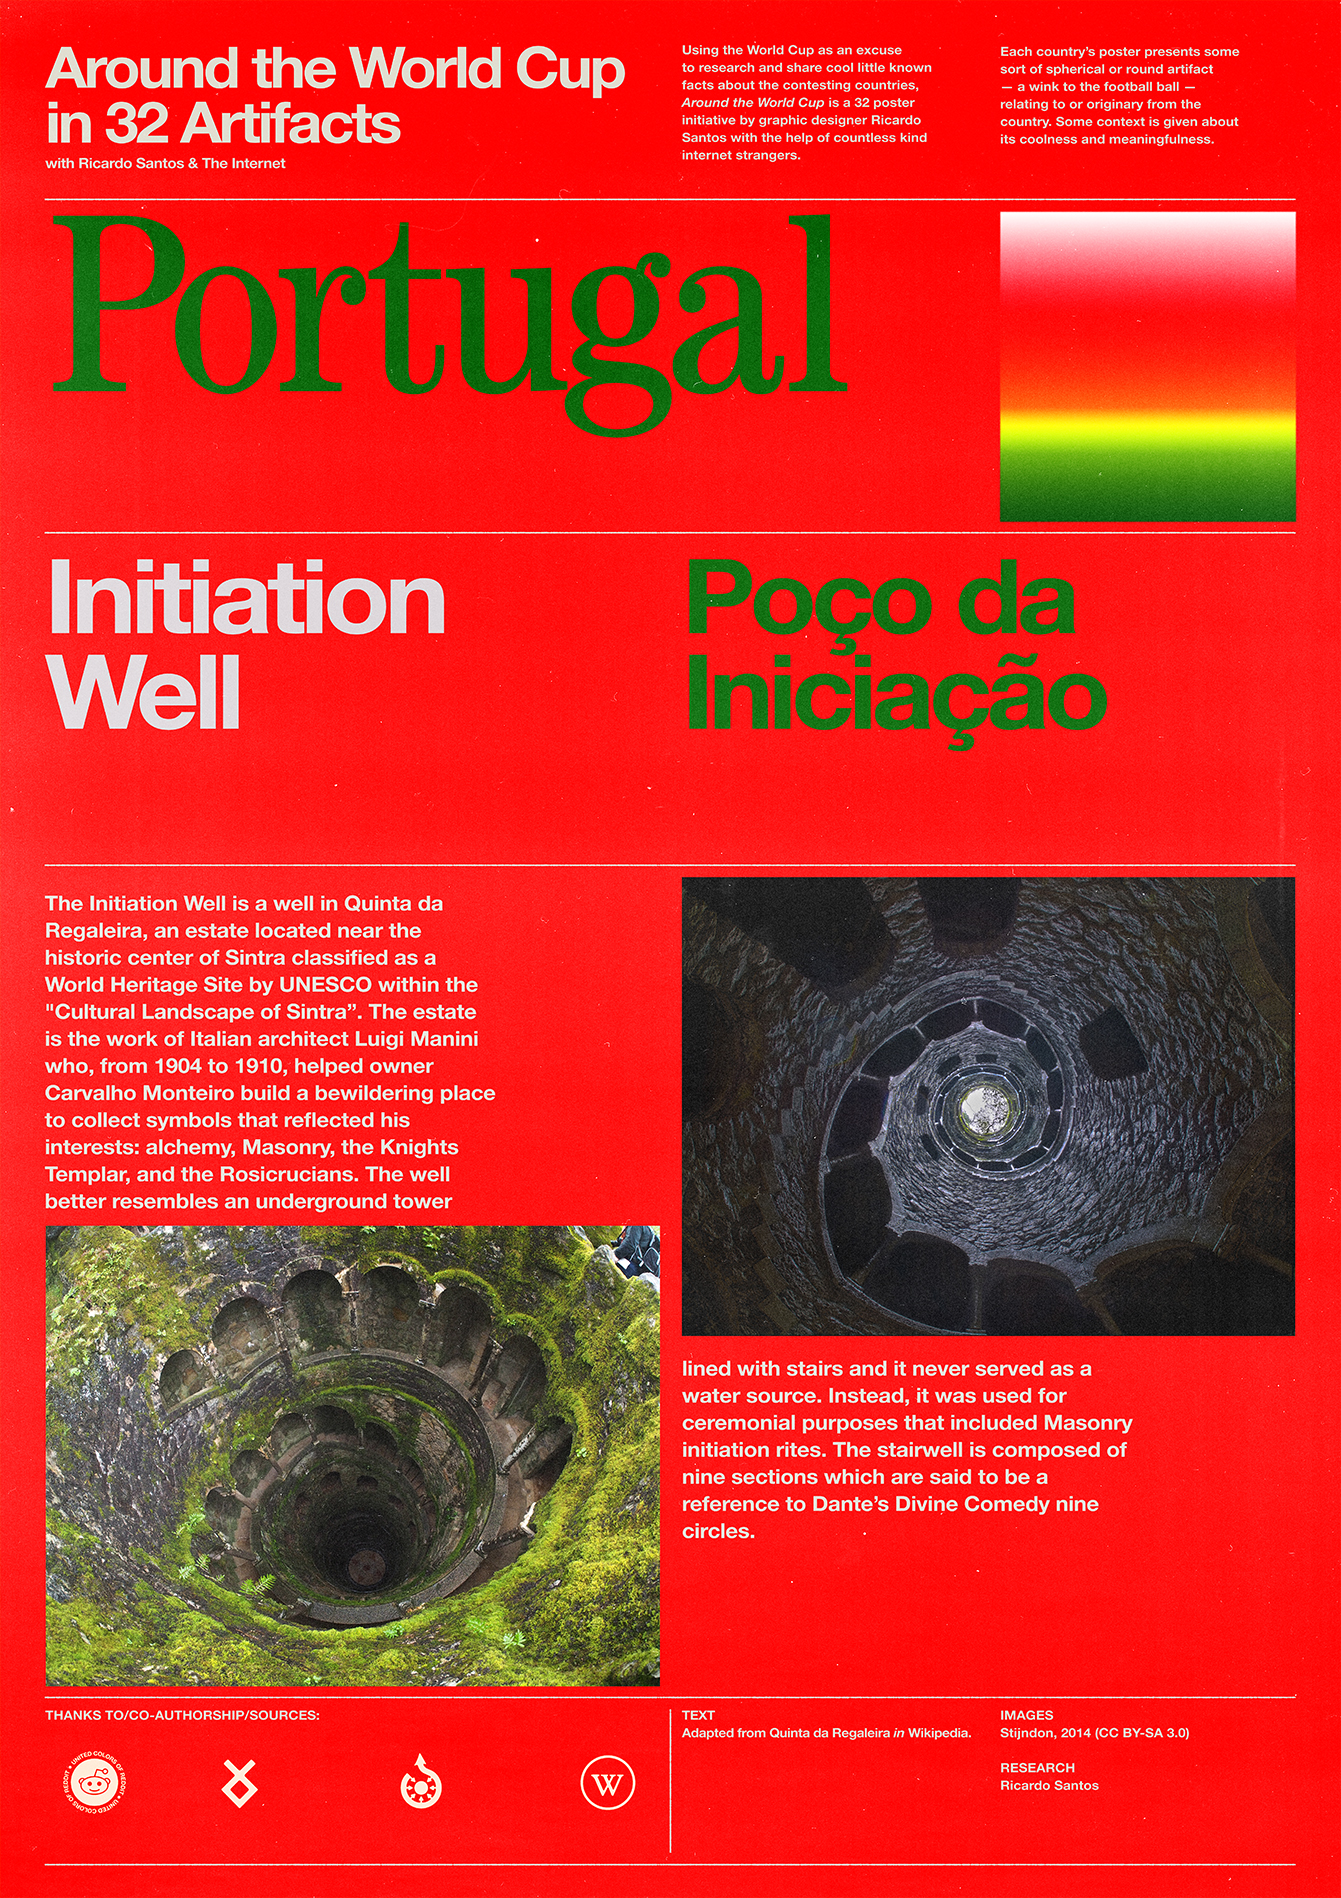 Portugal poster: Initiation Well